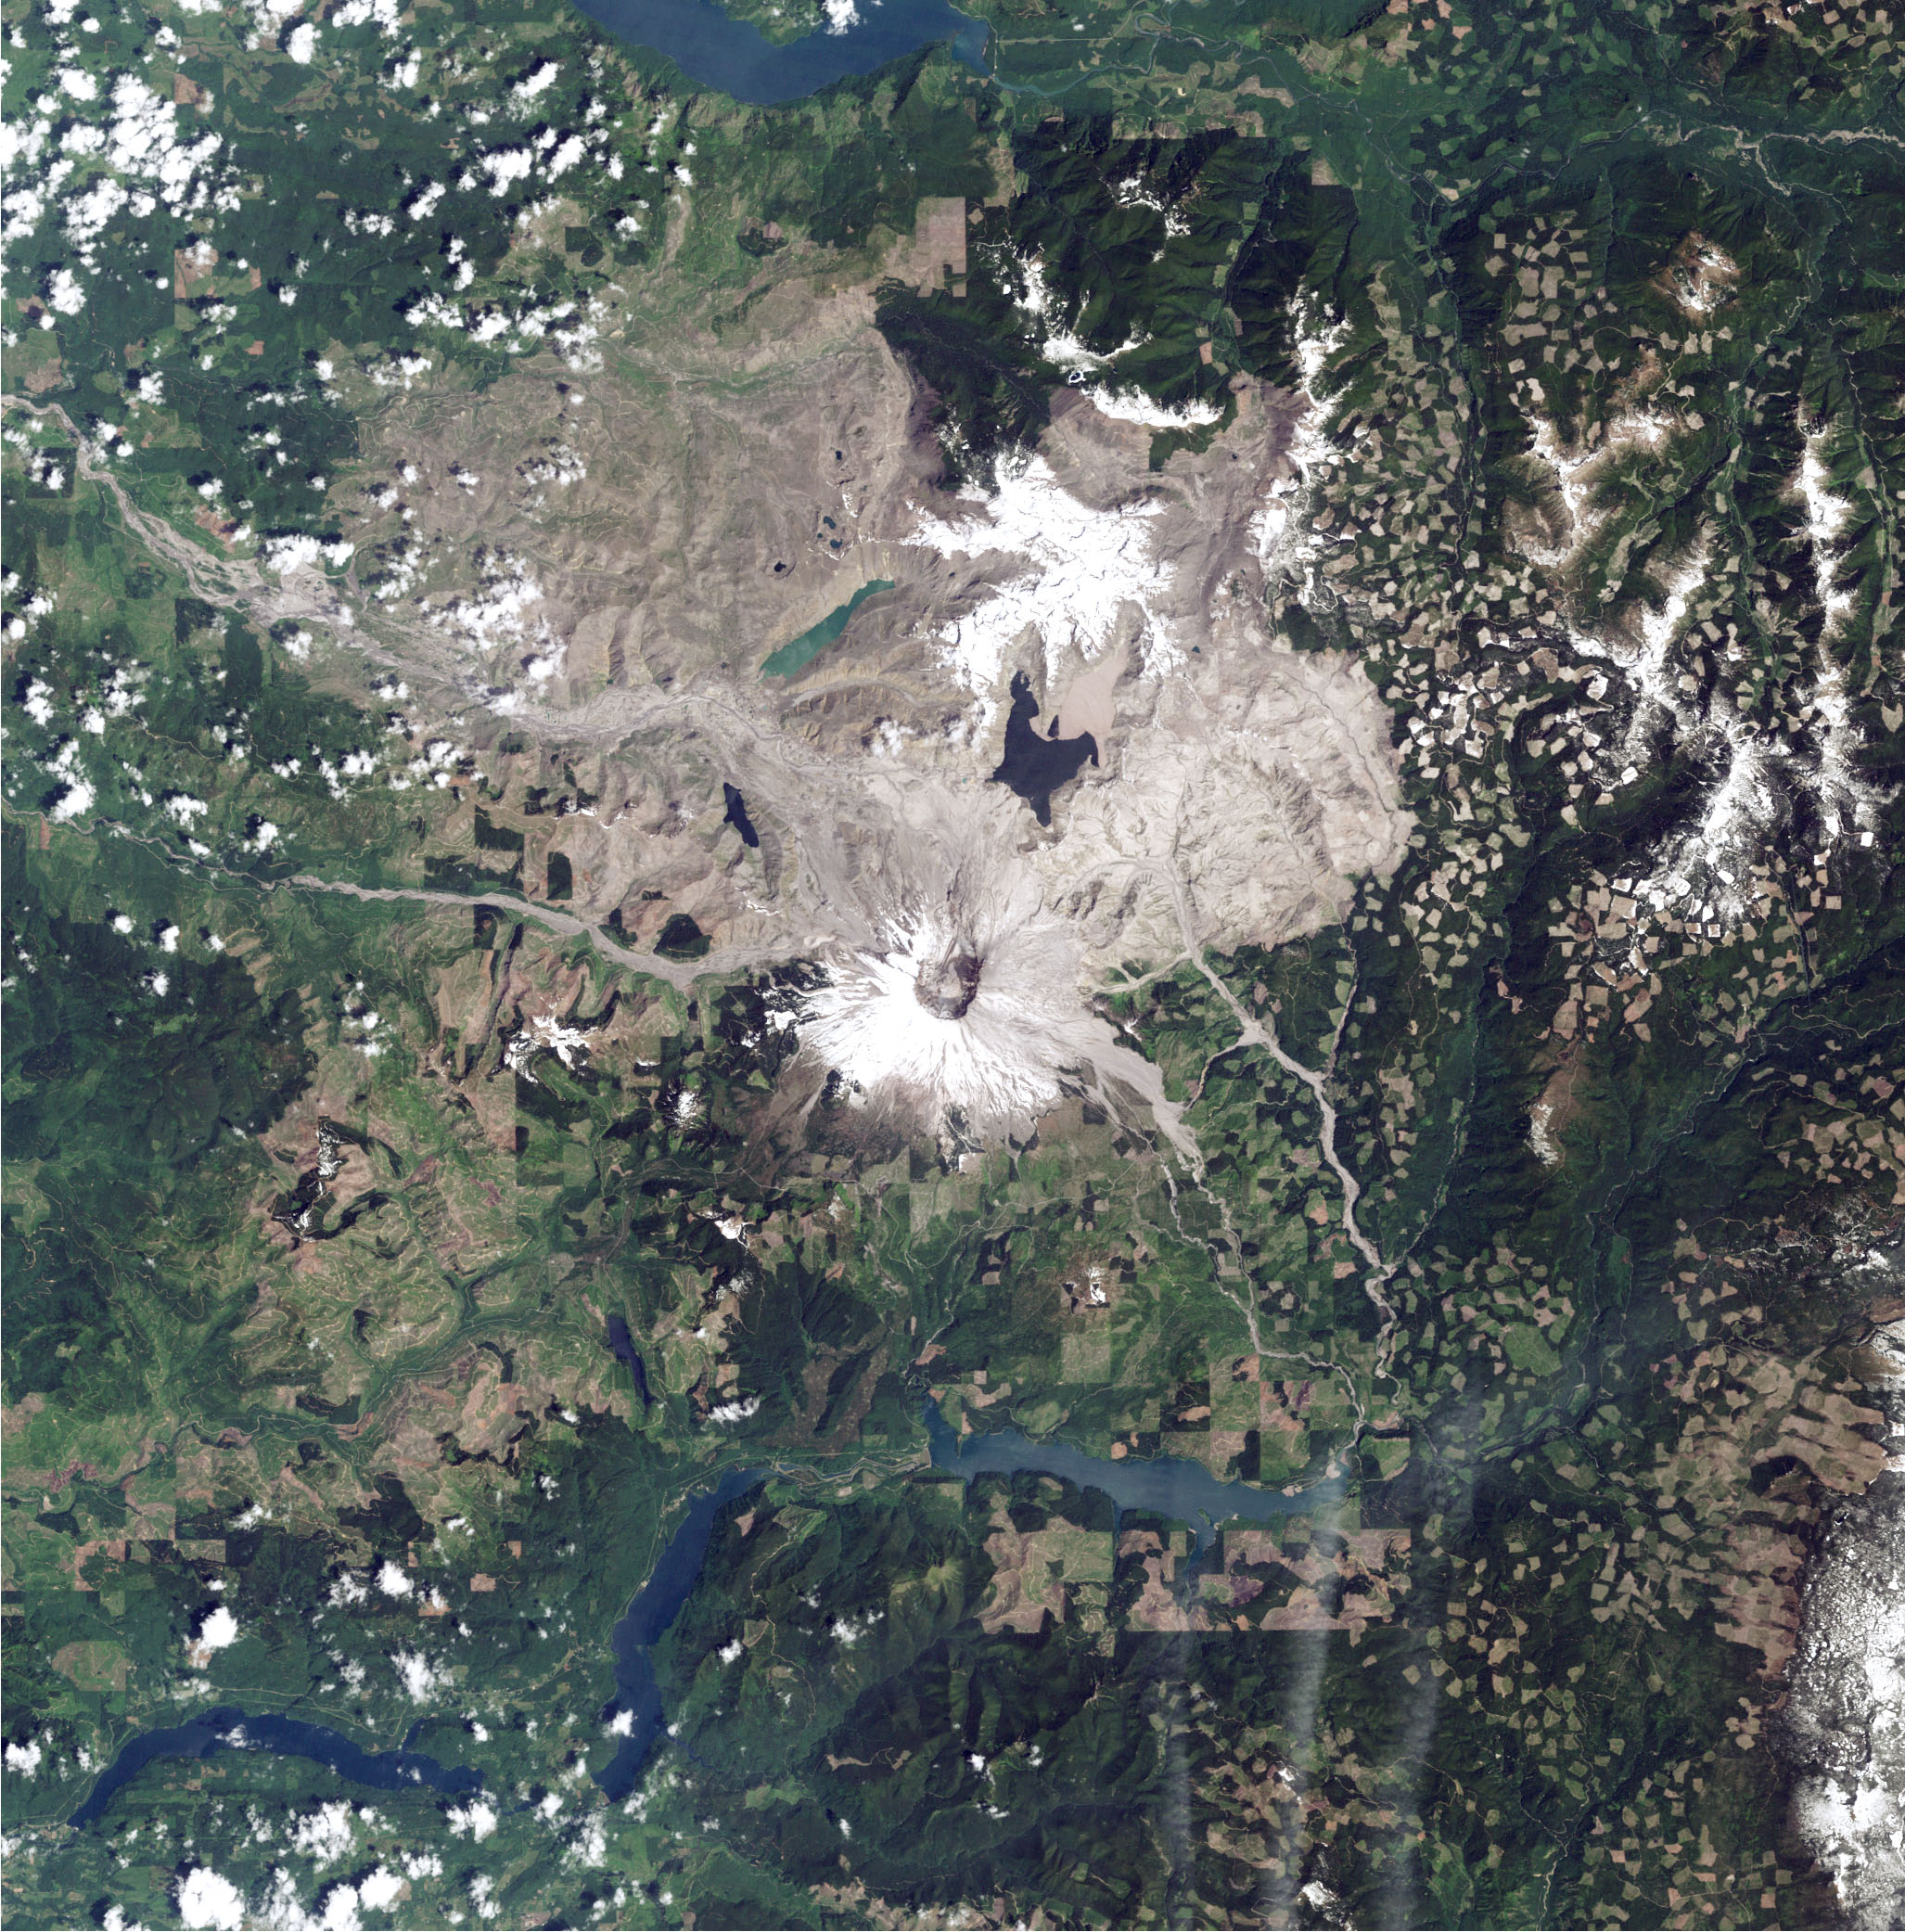 Life Reclaims Mount St Helens Image Of The Day